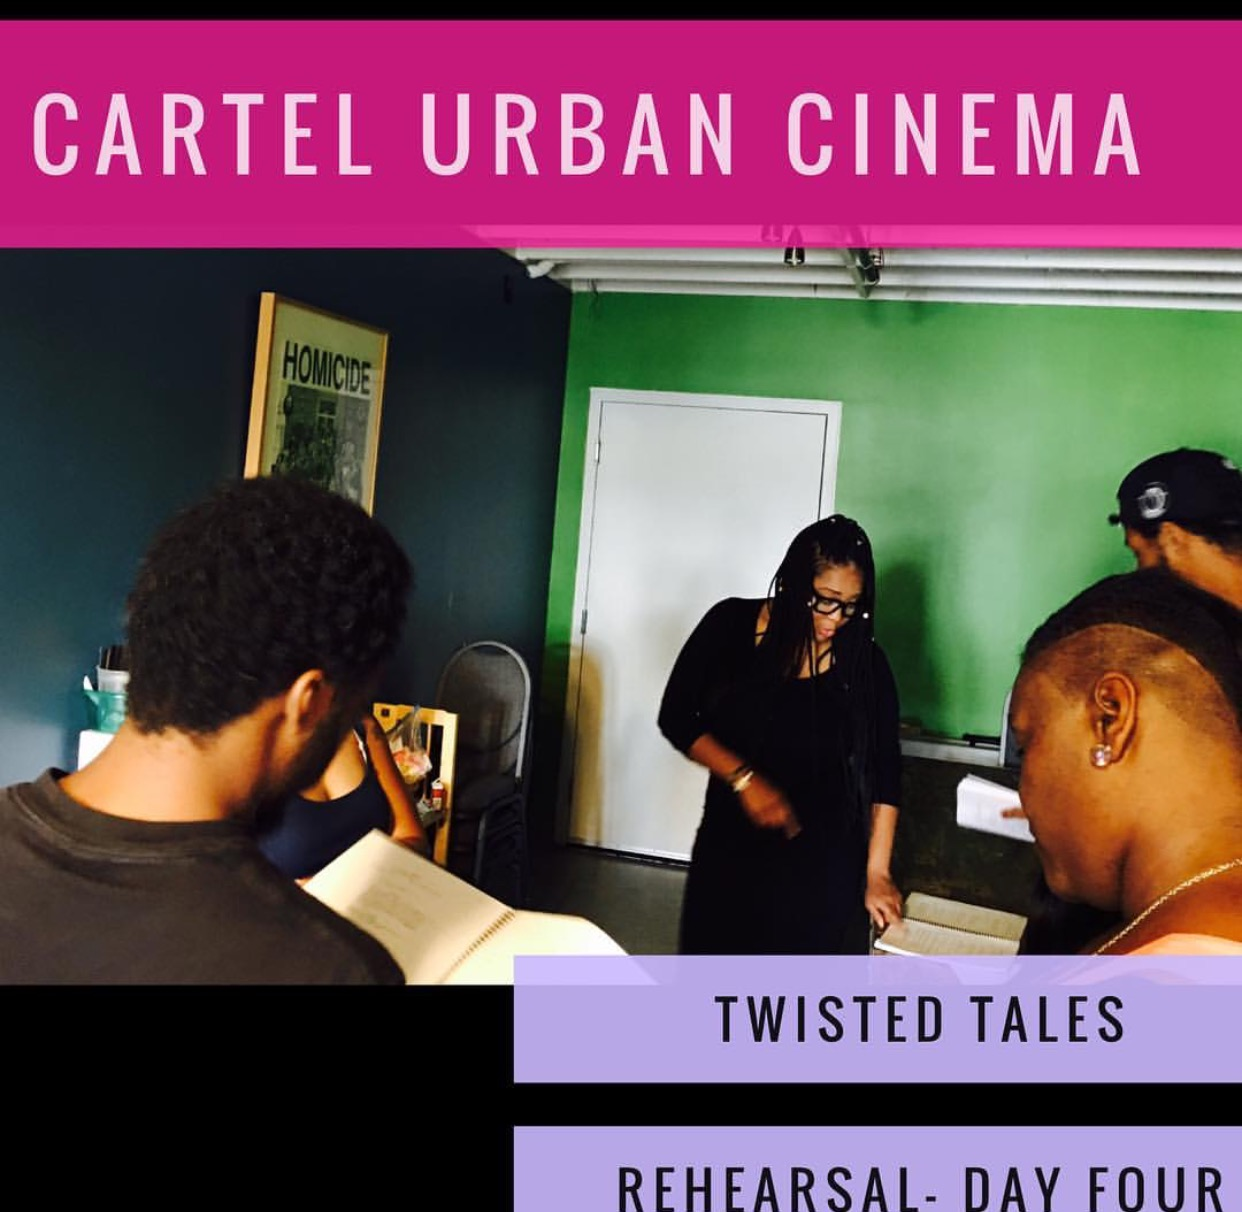 Author T. Styles Cartel Urban Cinema 1